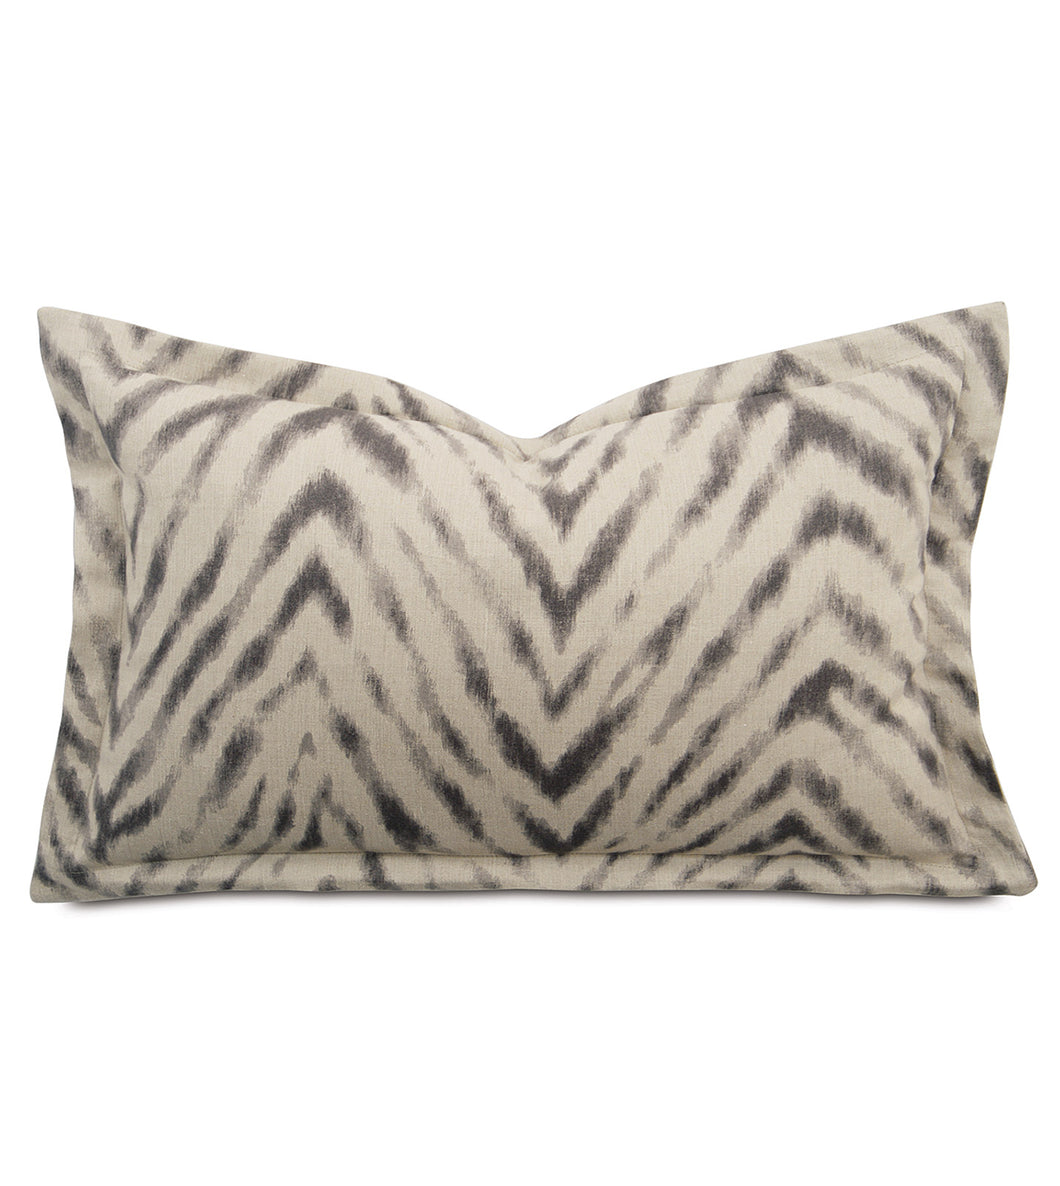 Fletcher Modern Animal Print Linen Flange King Sham in Beige 21